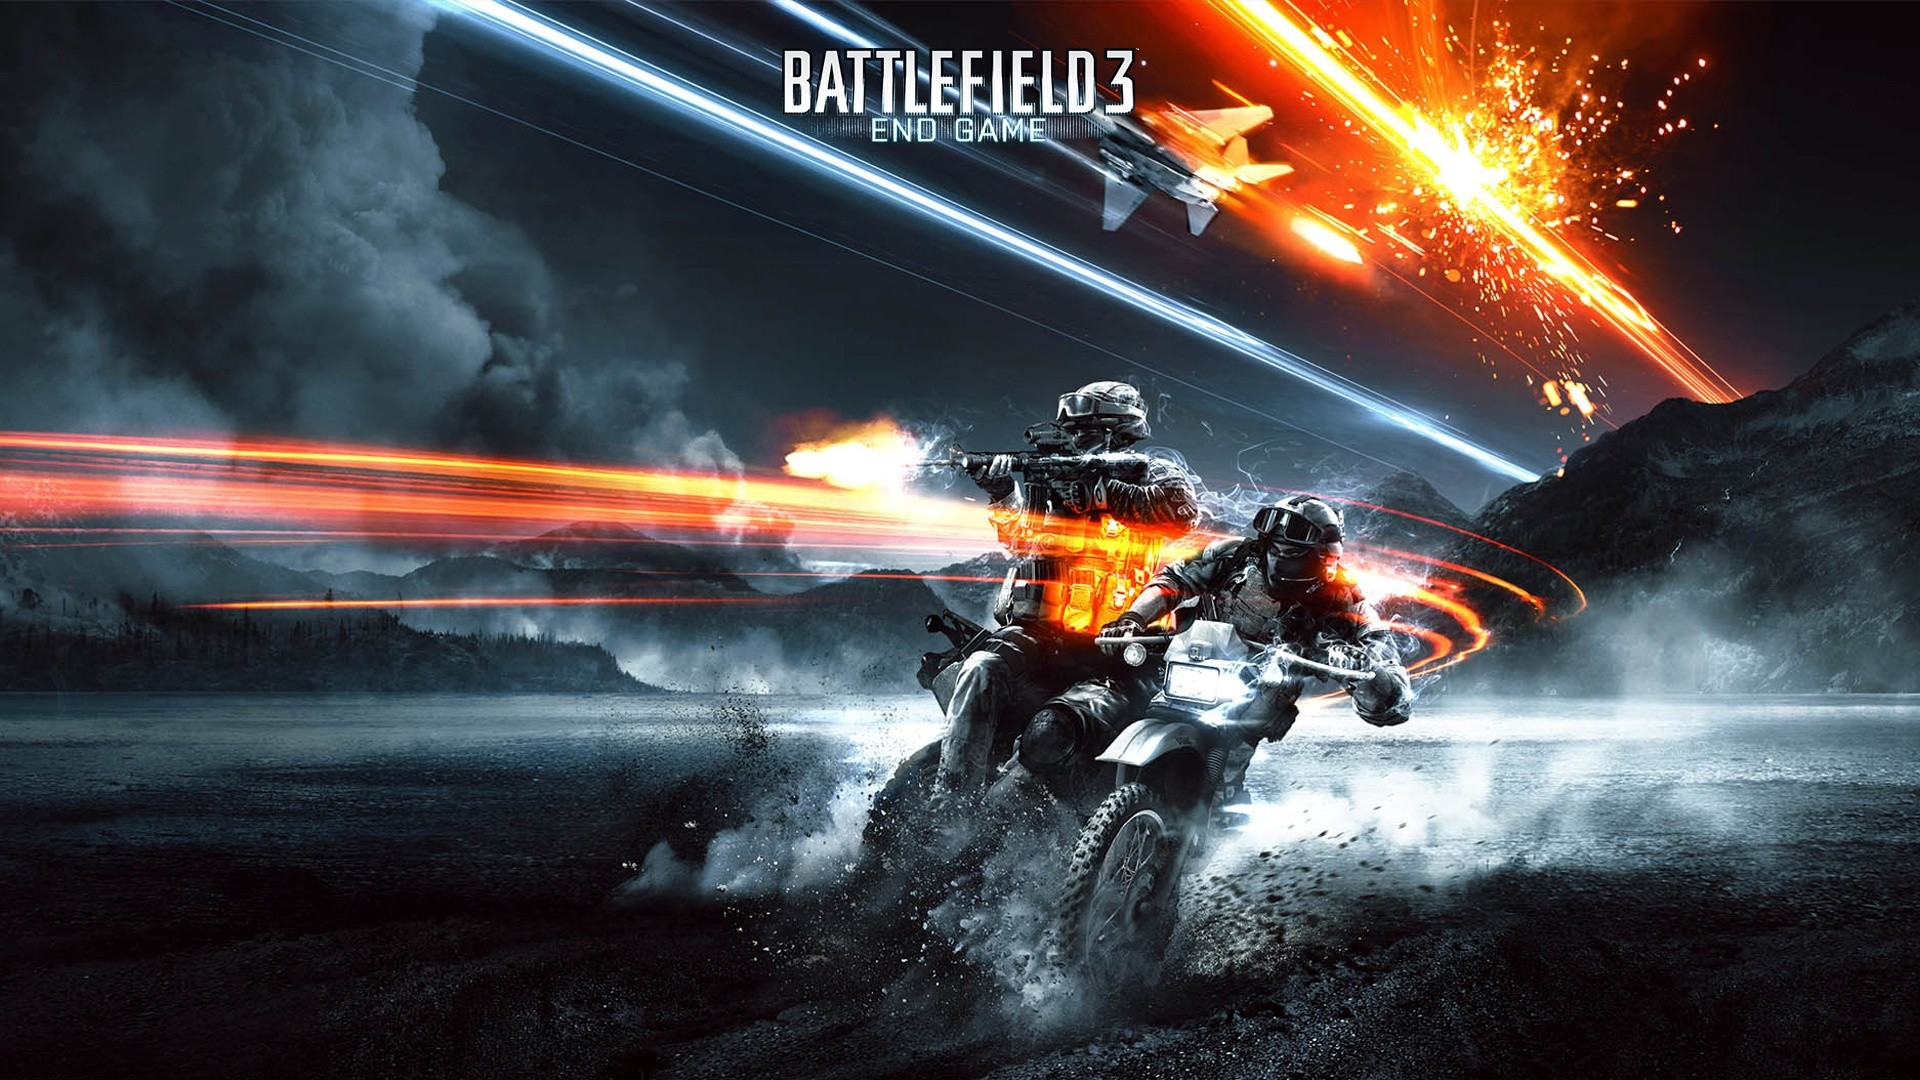 1920x1080 battlefield 3 motorcycle shooting poster